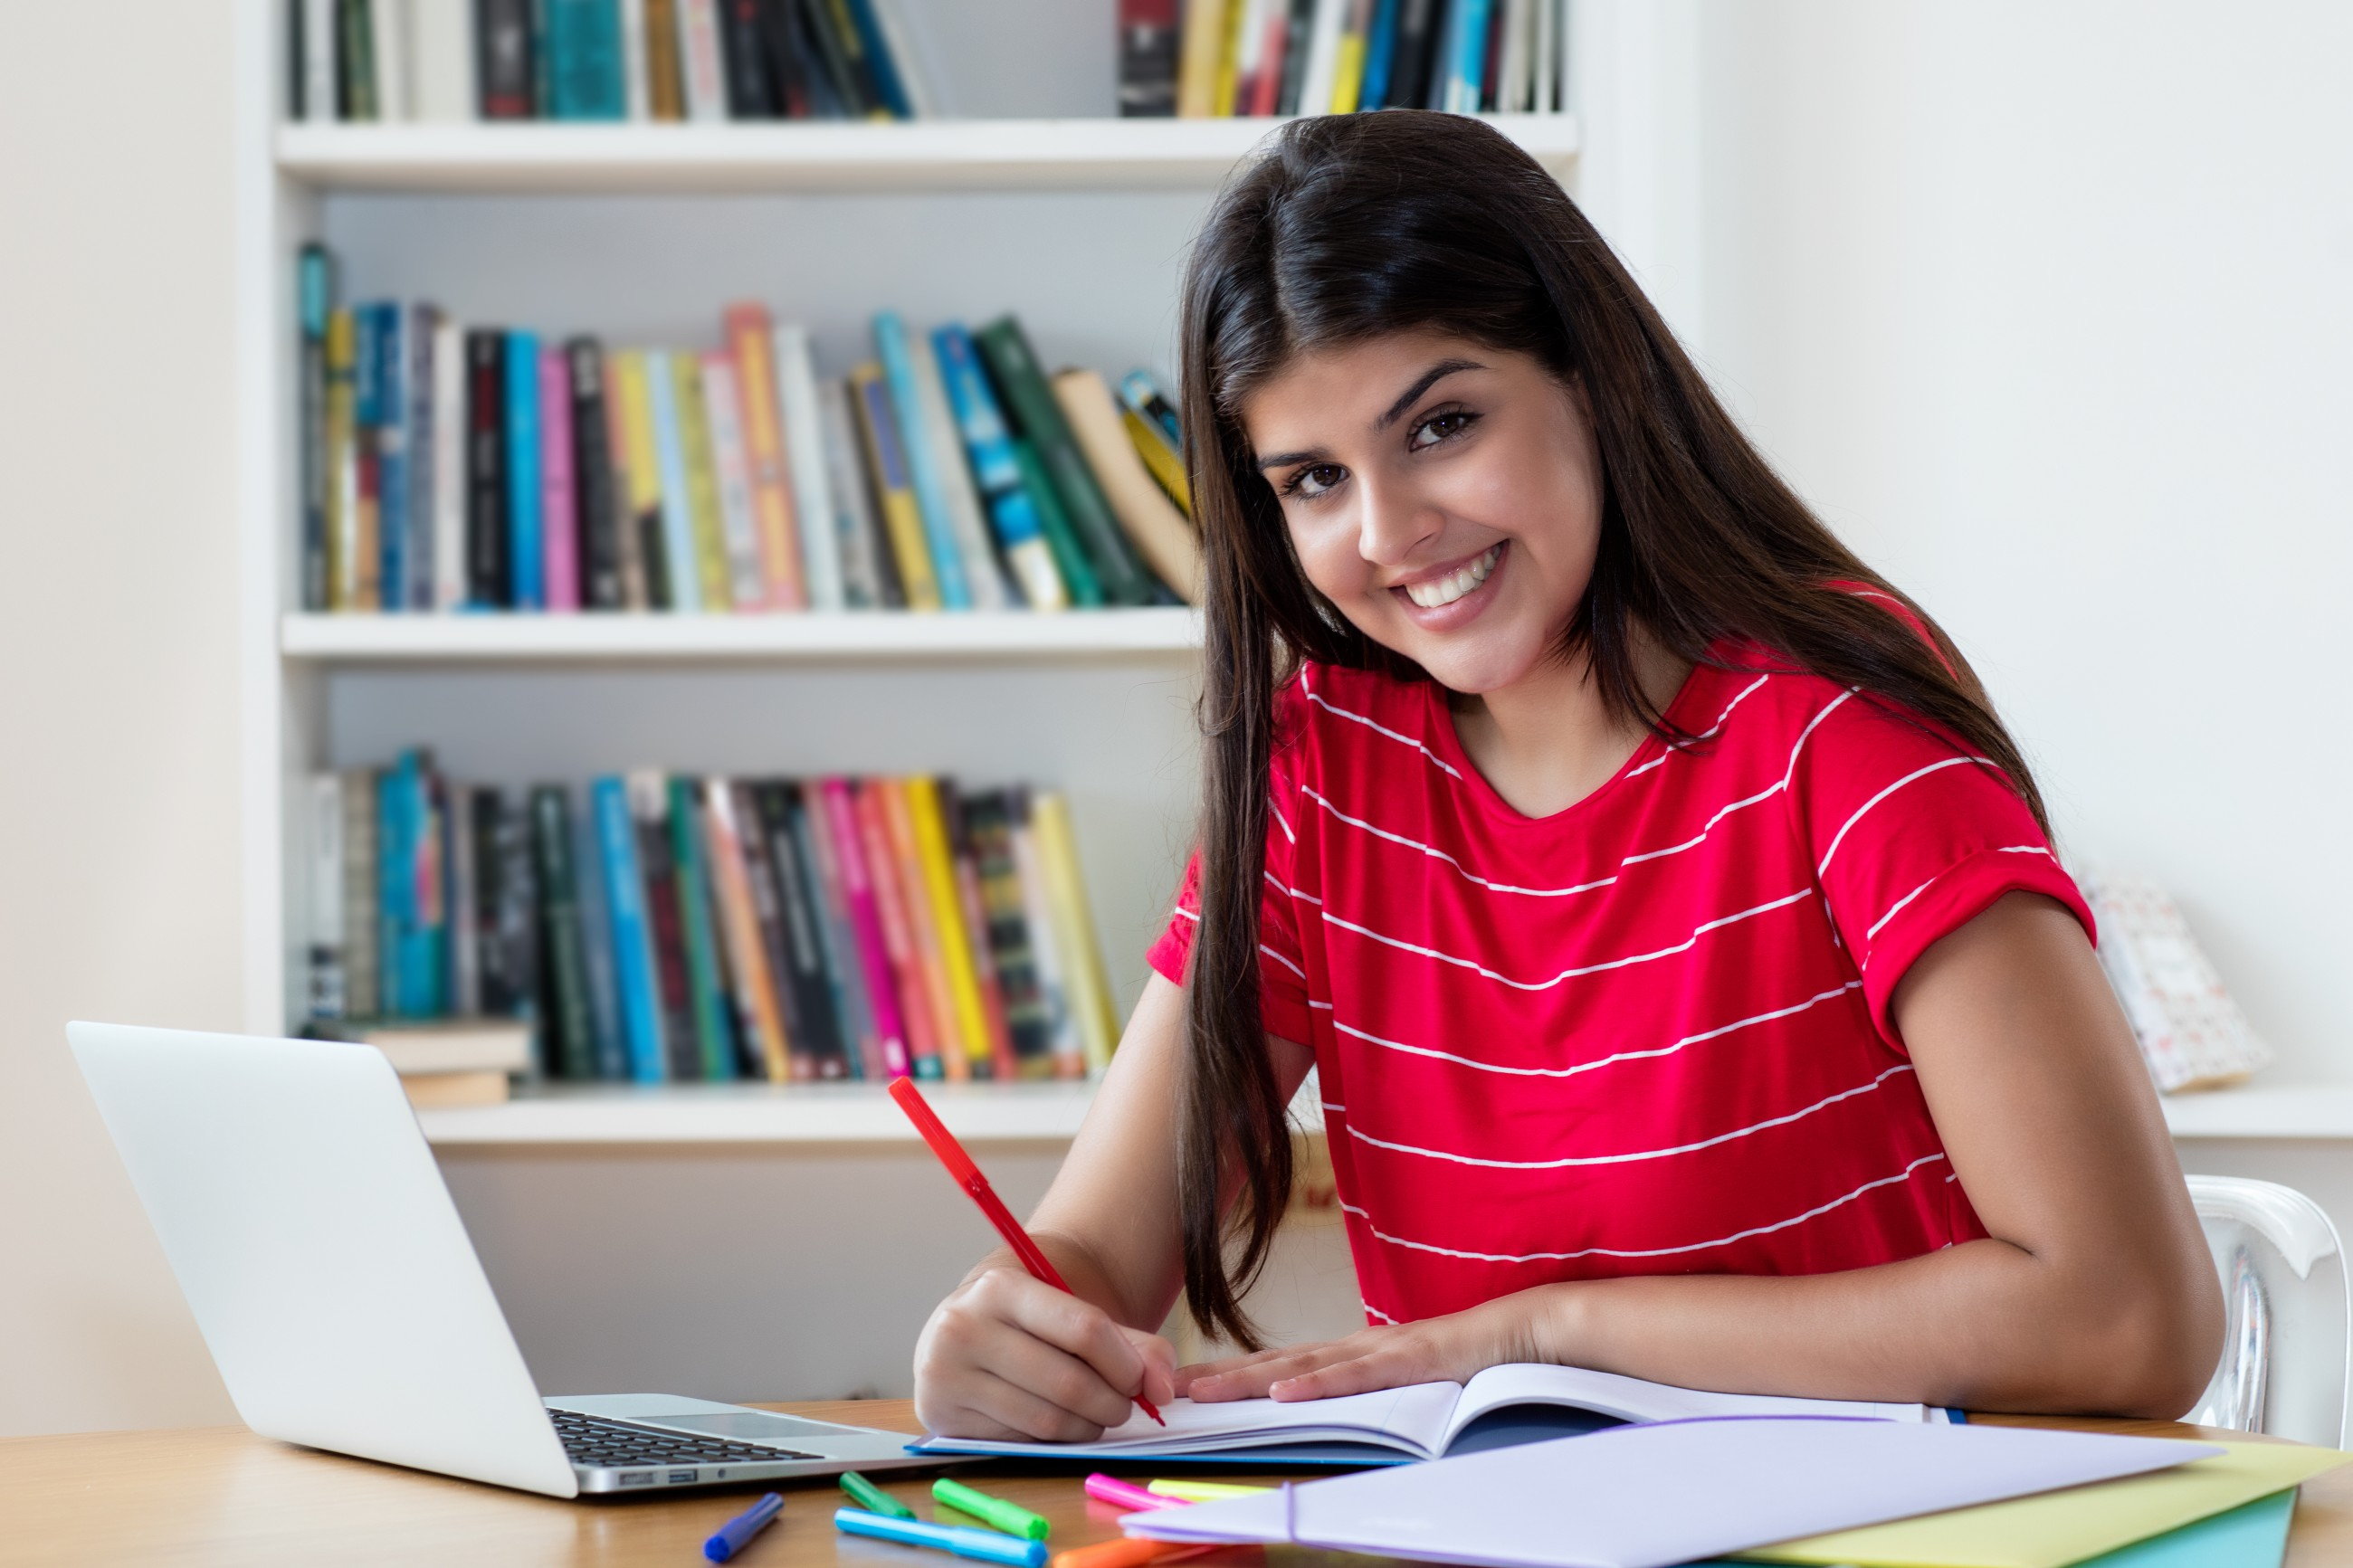 SSC JHT Exam Preparation Tips